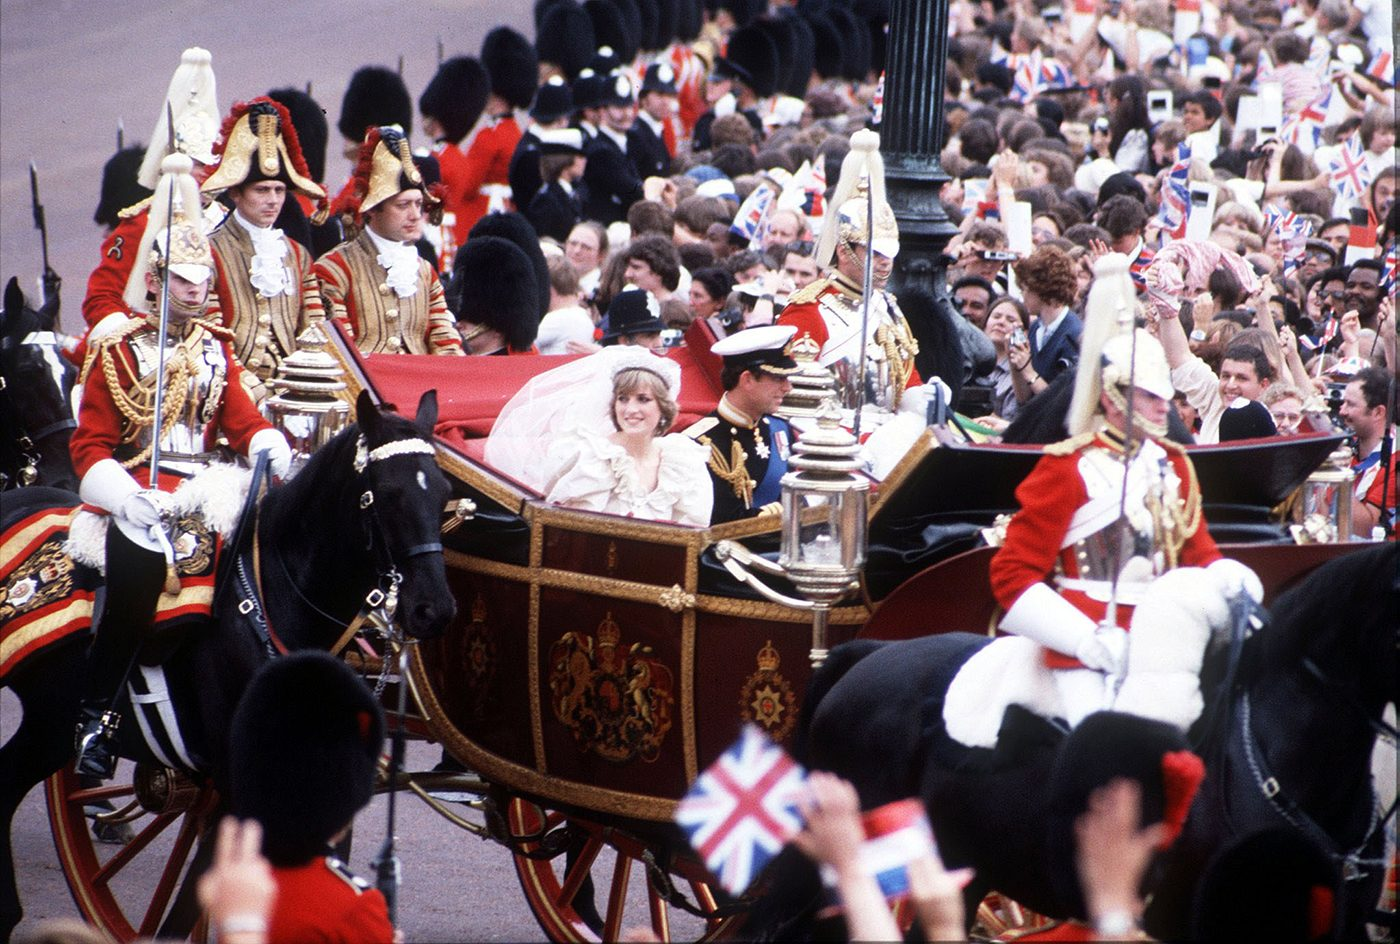 Prince Charles and Princess Diana wedding carriage ride